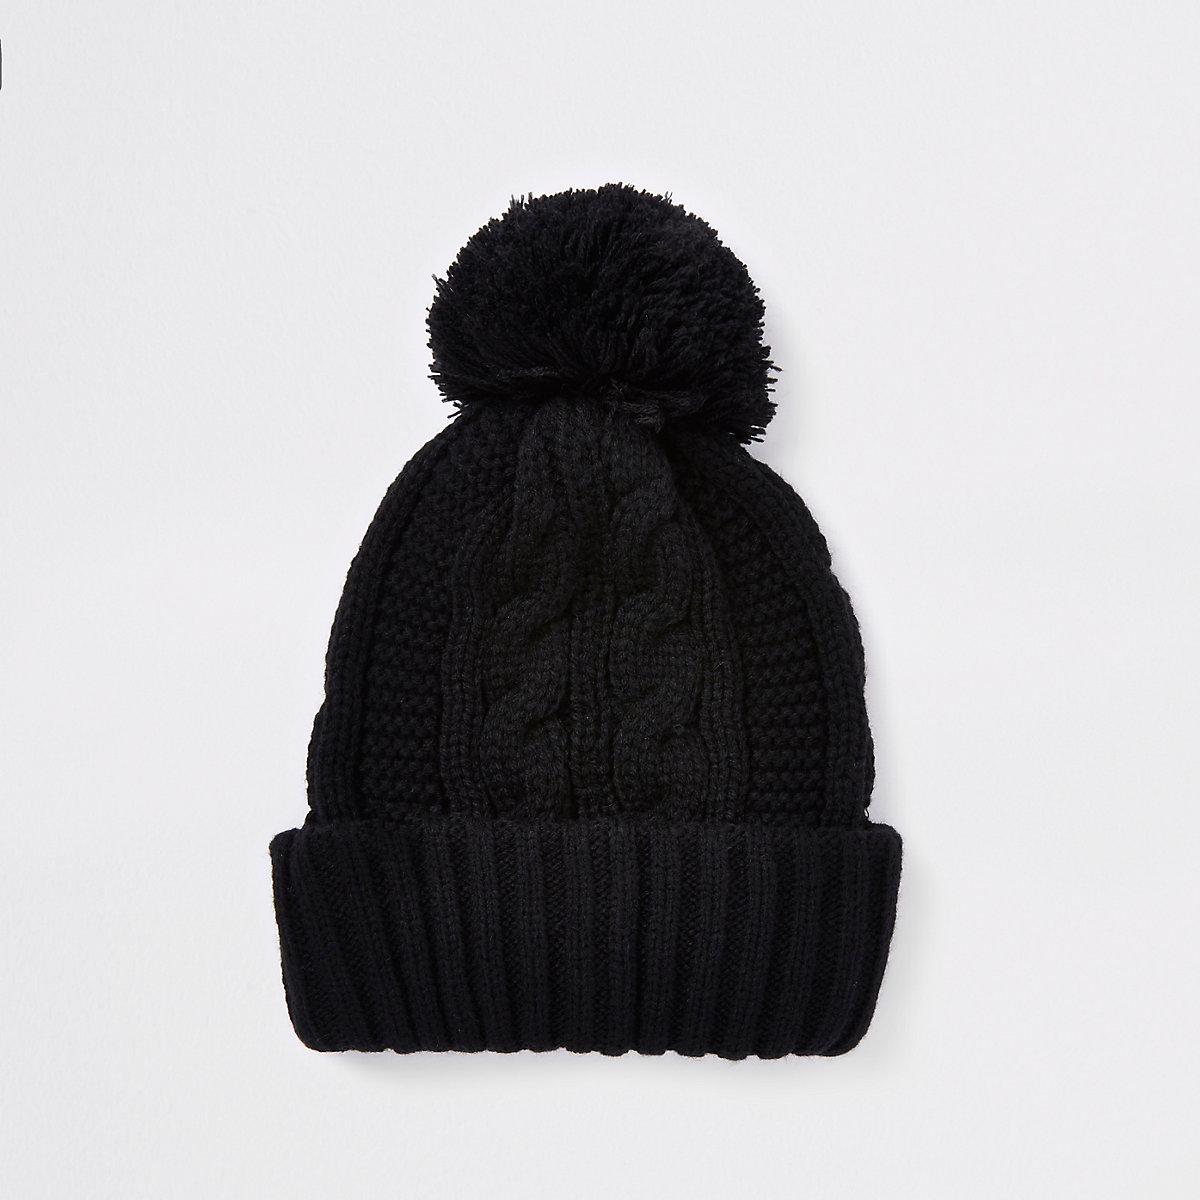 99ec118ac93 Black cable knit bobble beanie hat - Hats   Caps - Accessories - men